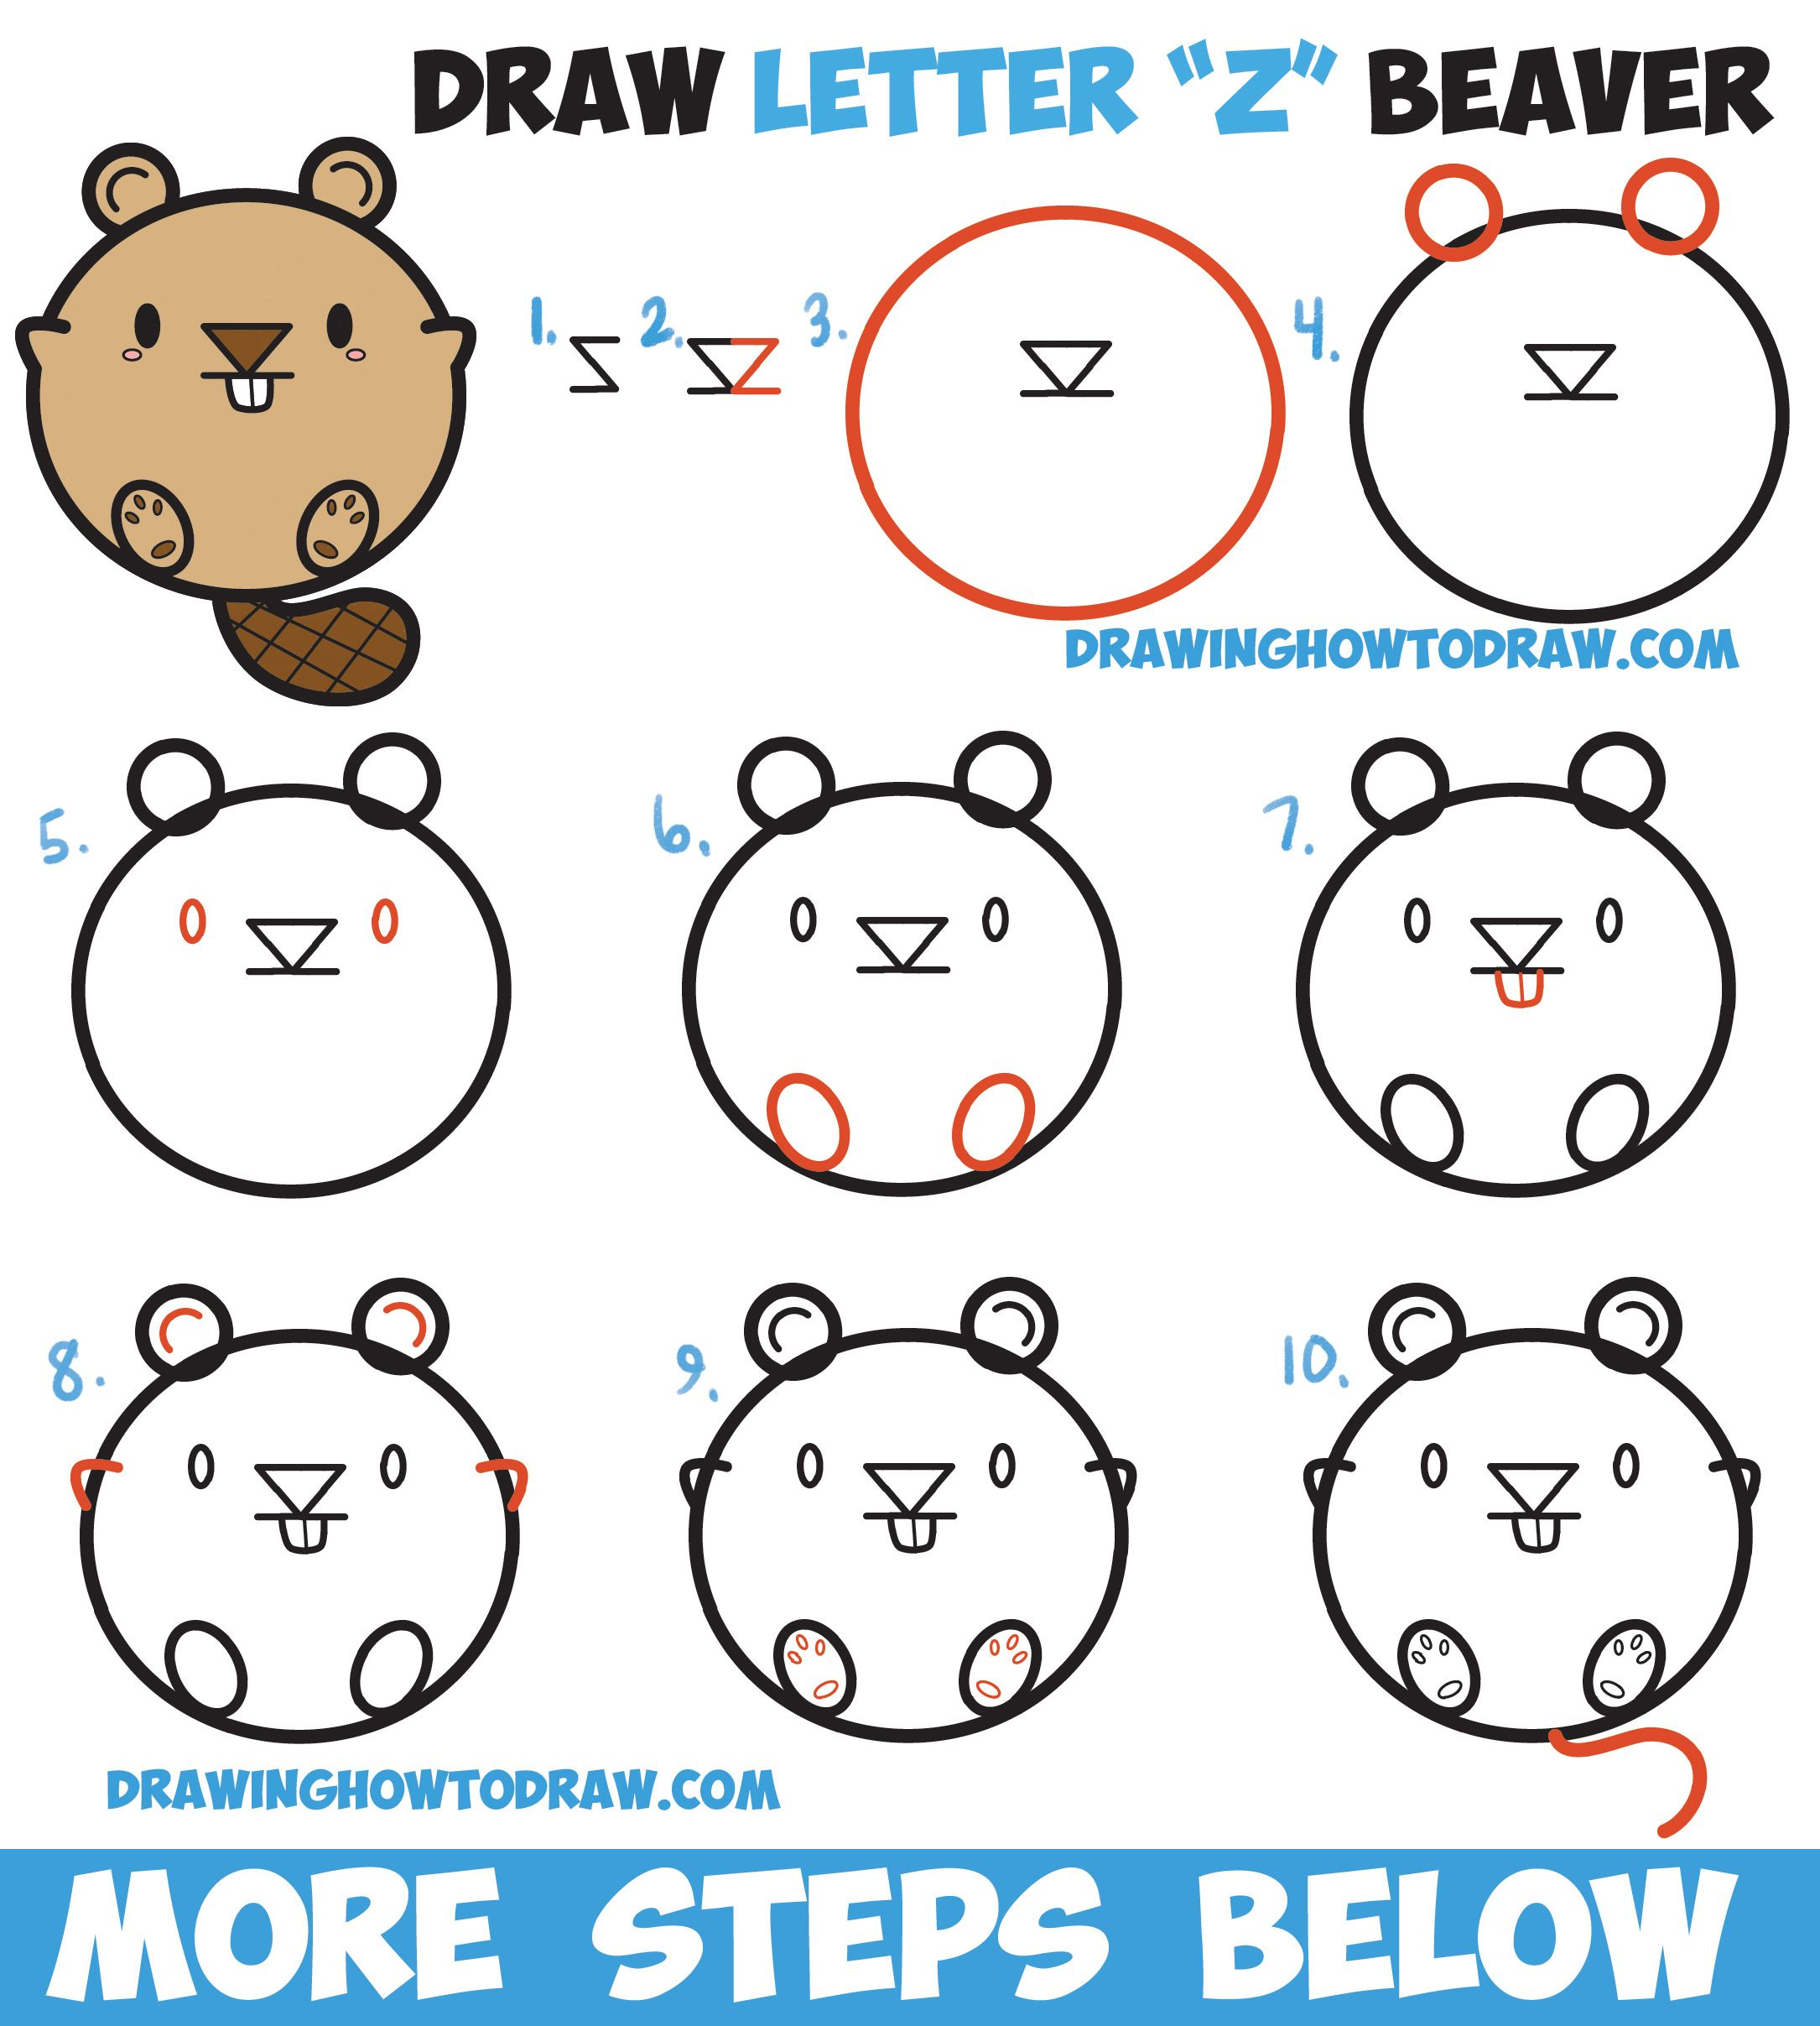 Learn How To Draw A Cute Cartoon Beaver With Letters Easy Step By Step Drawing Tutorial For Children How To Draw Step By Step Drawing Tutorials Drawing Tutorial Step By